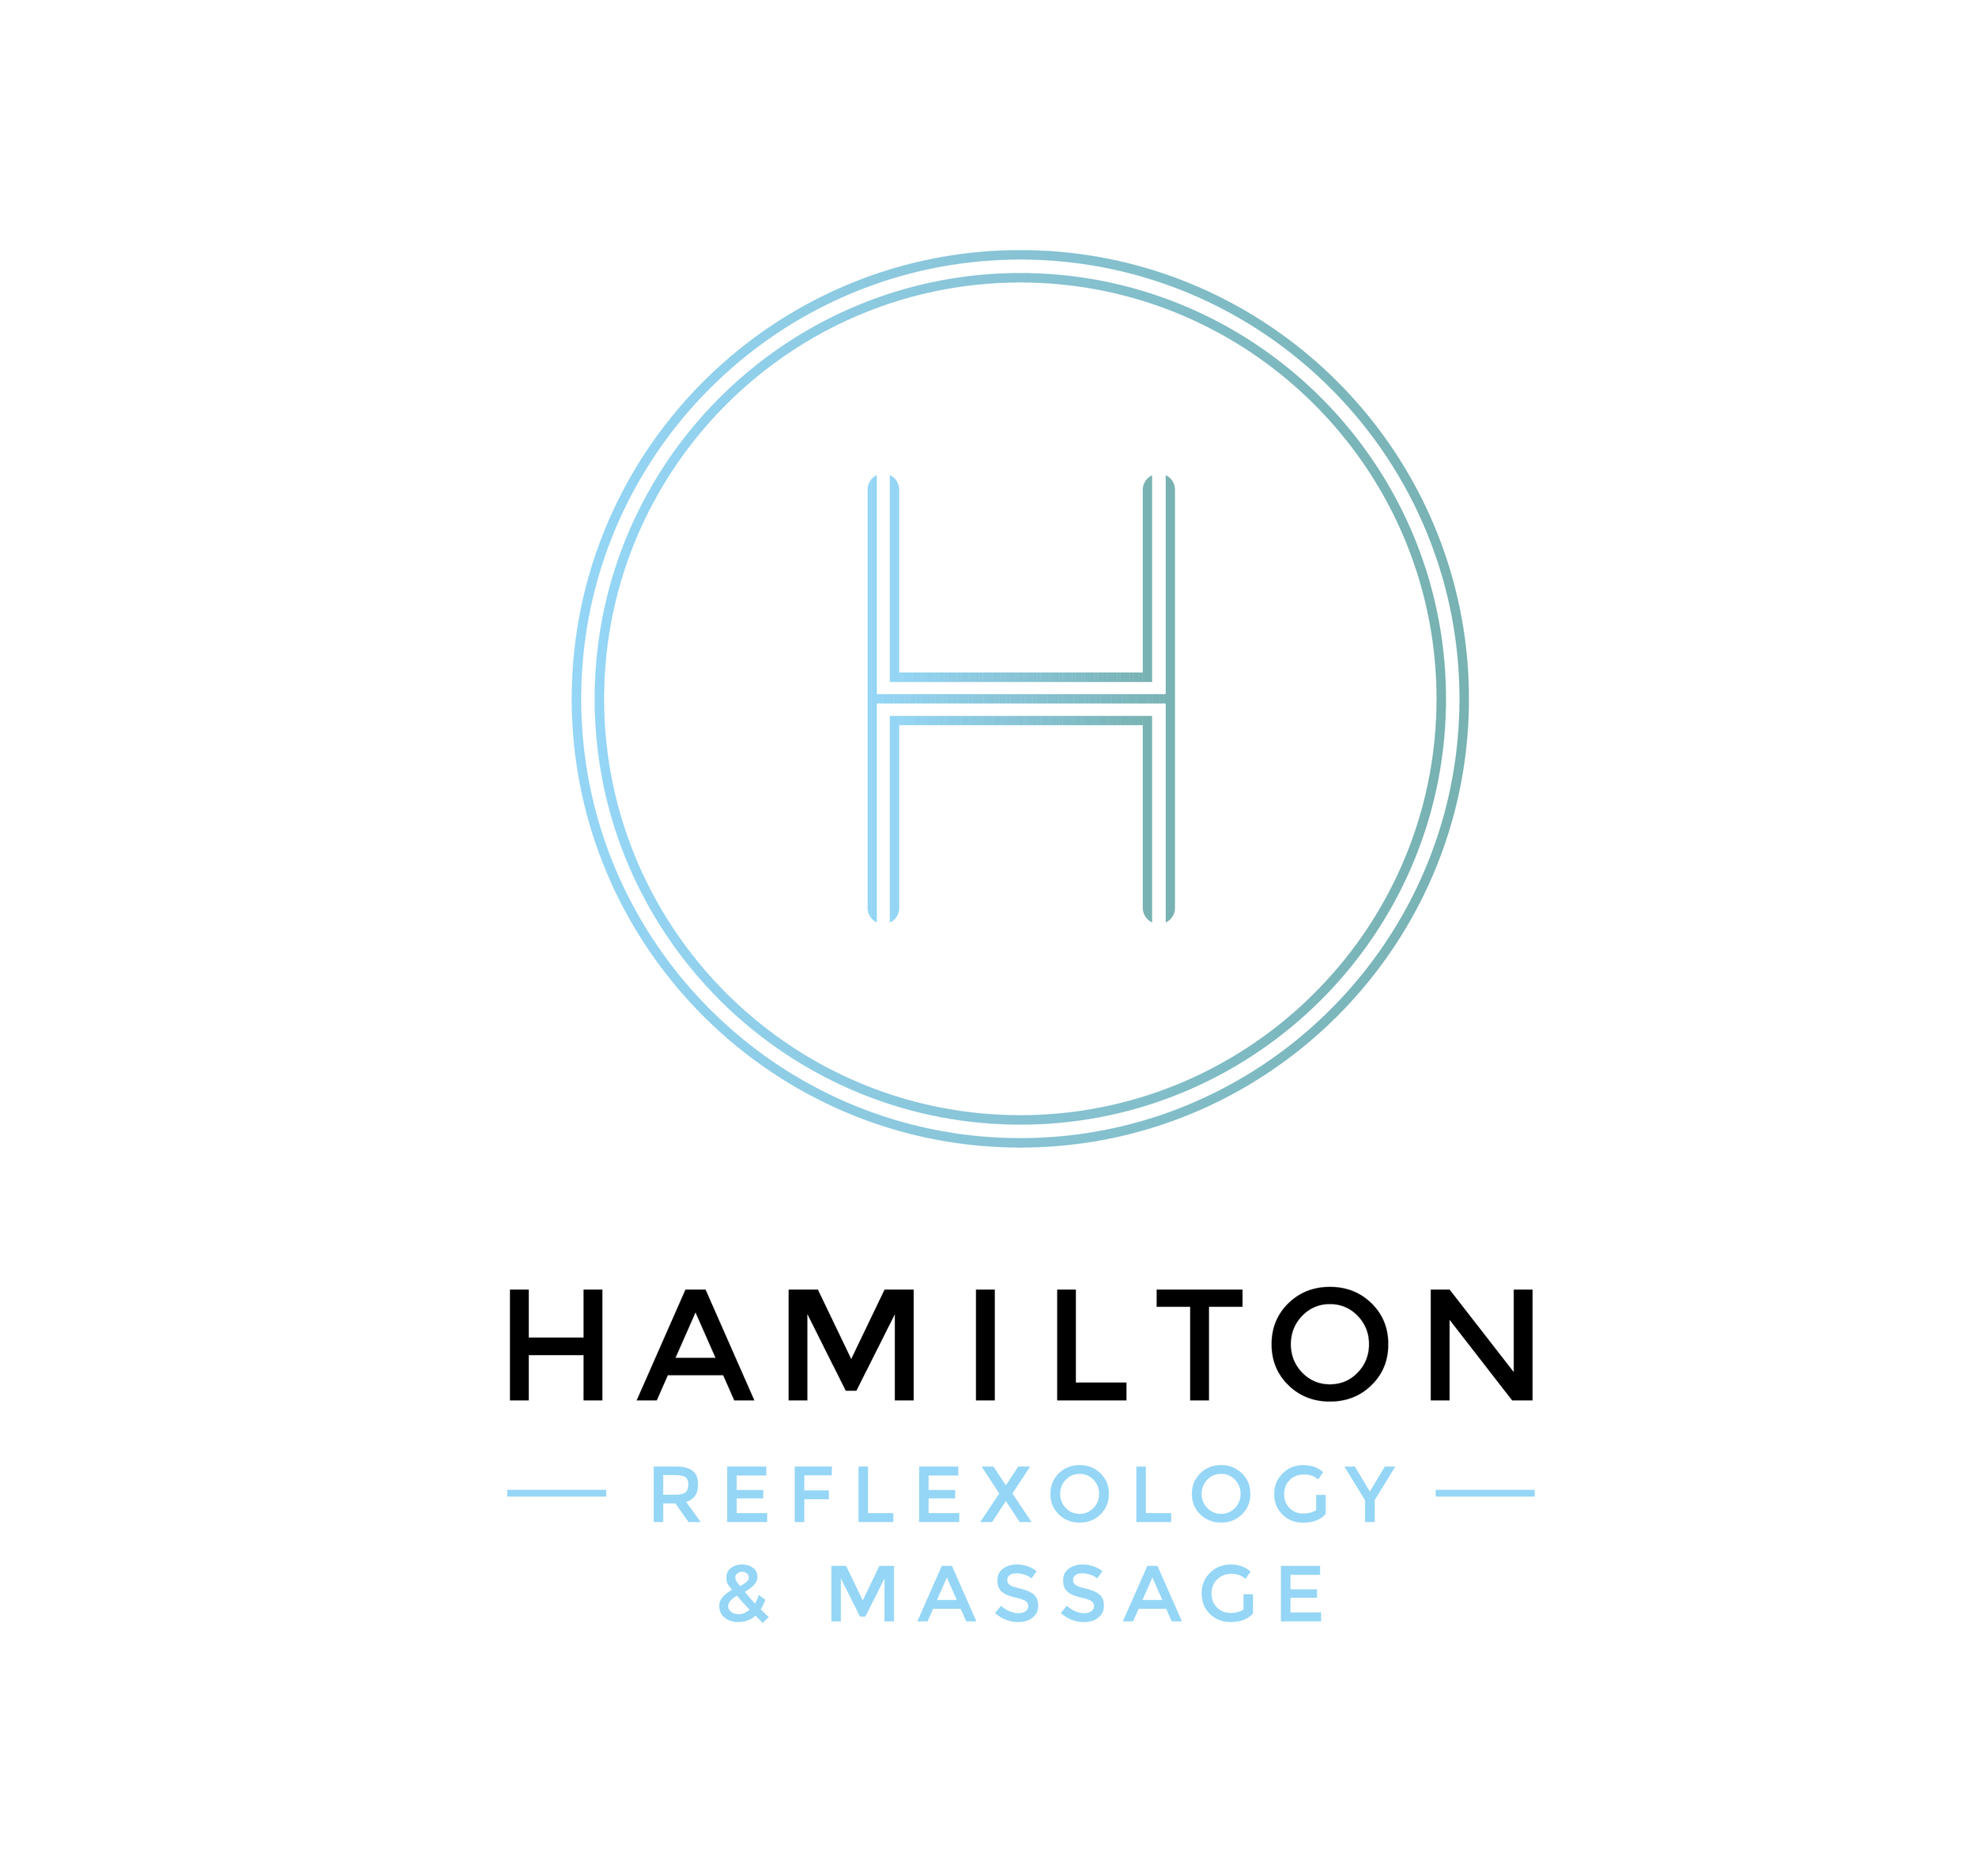 Hamilton Health Reflexology